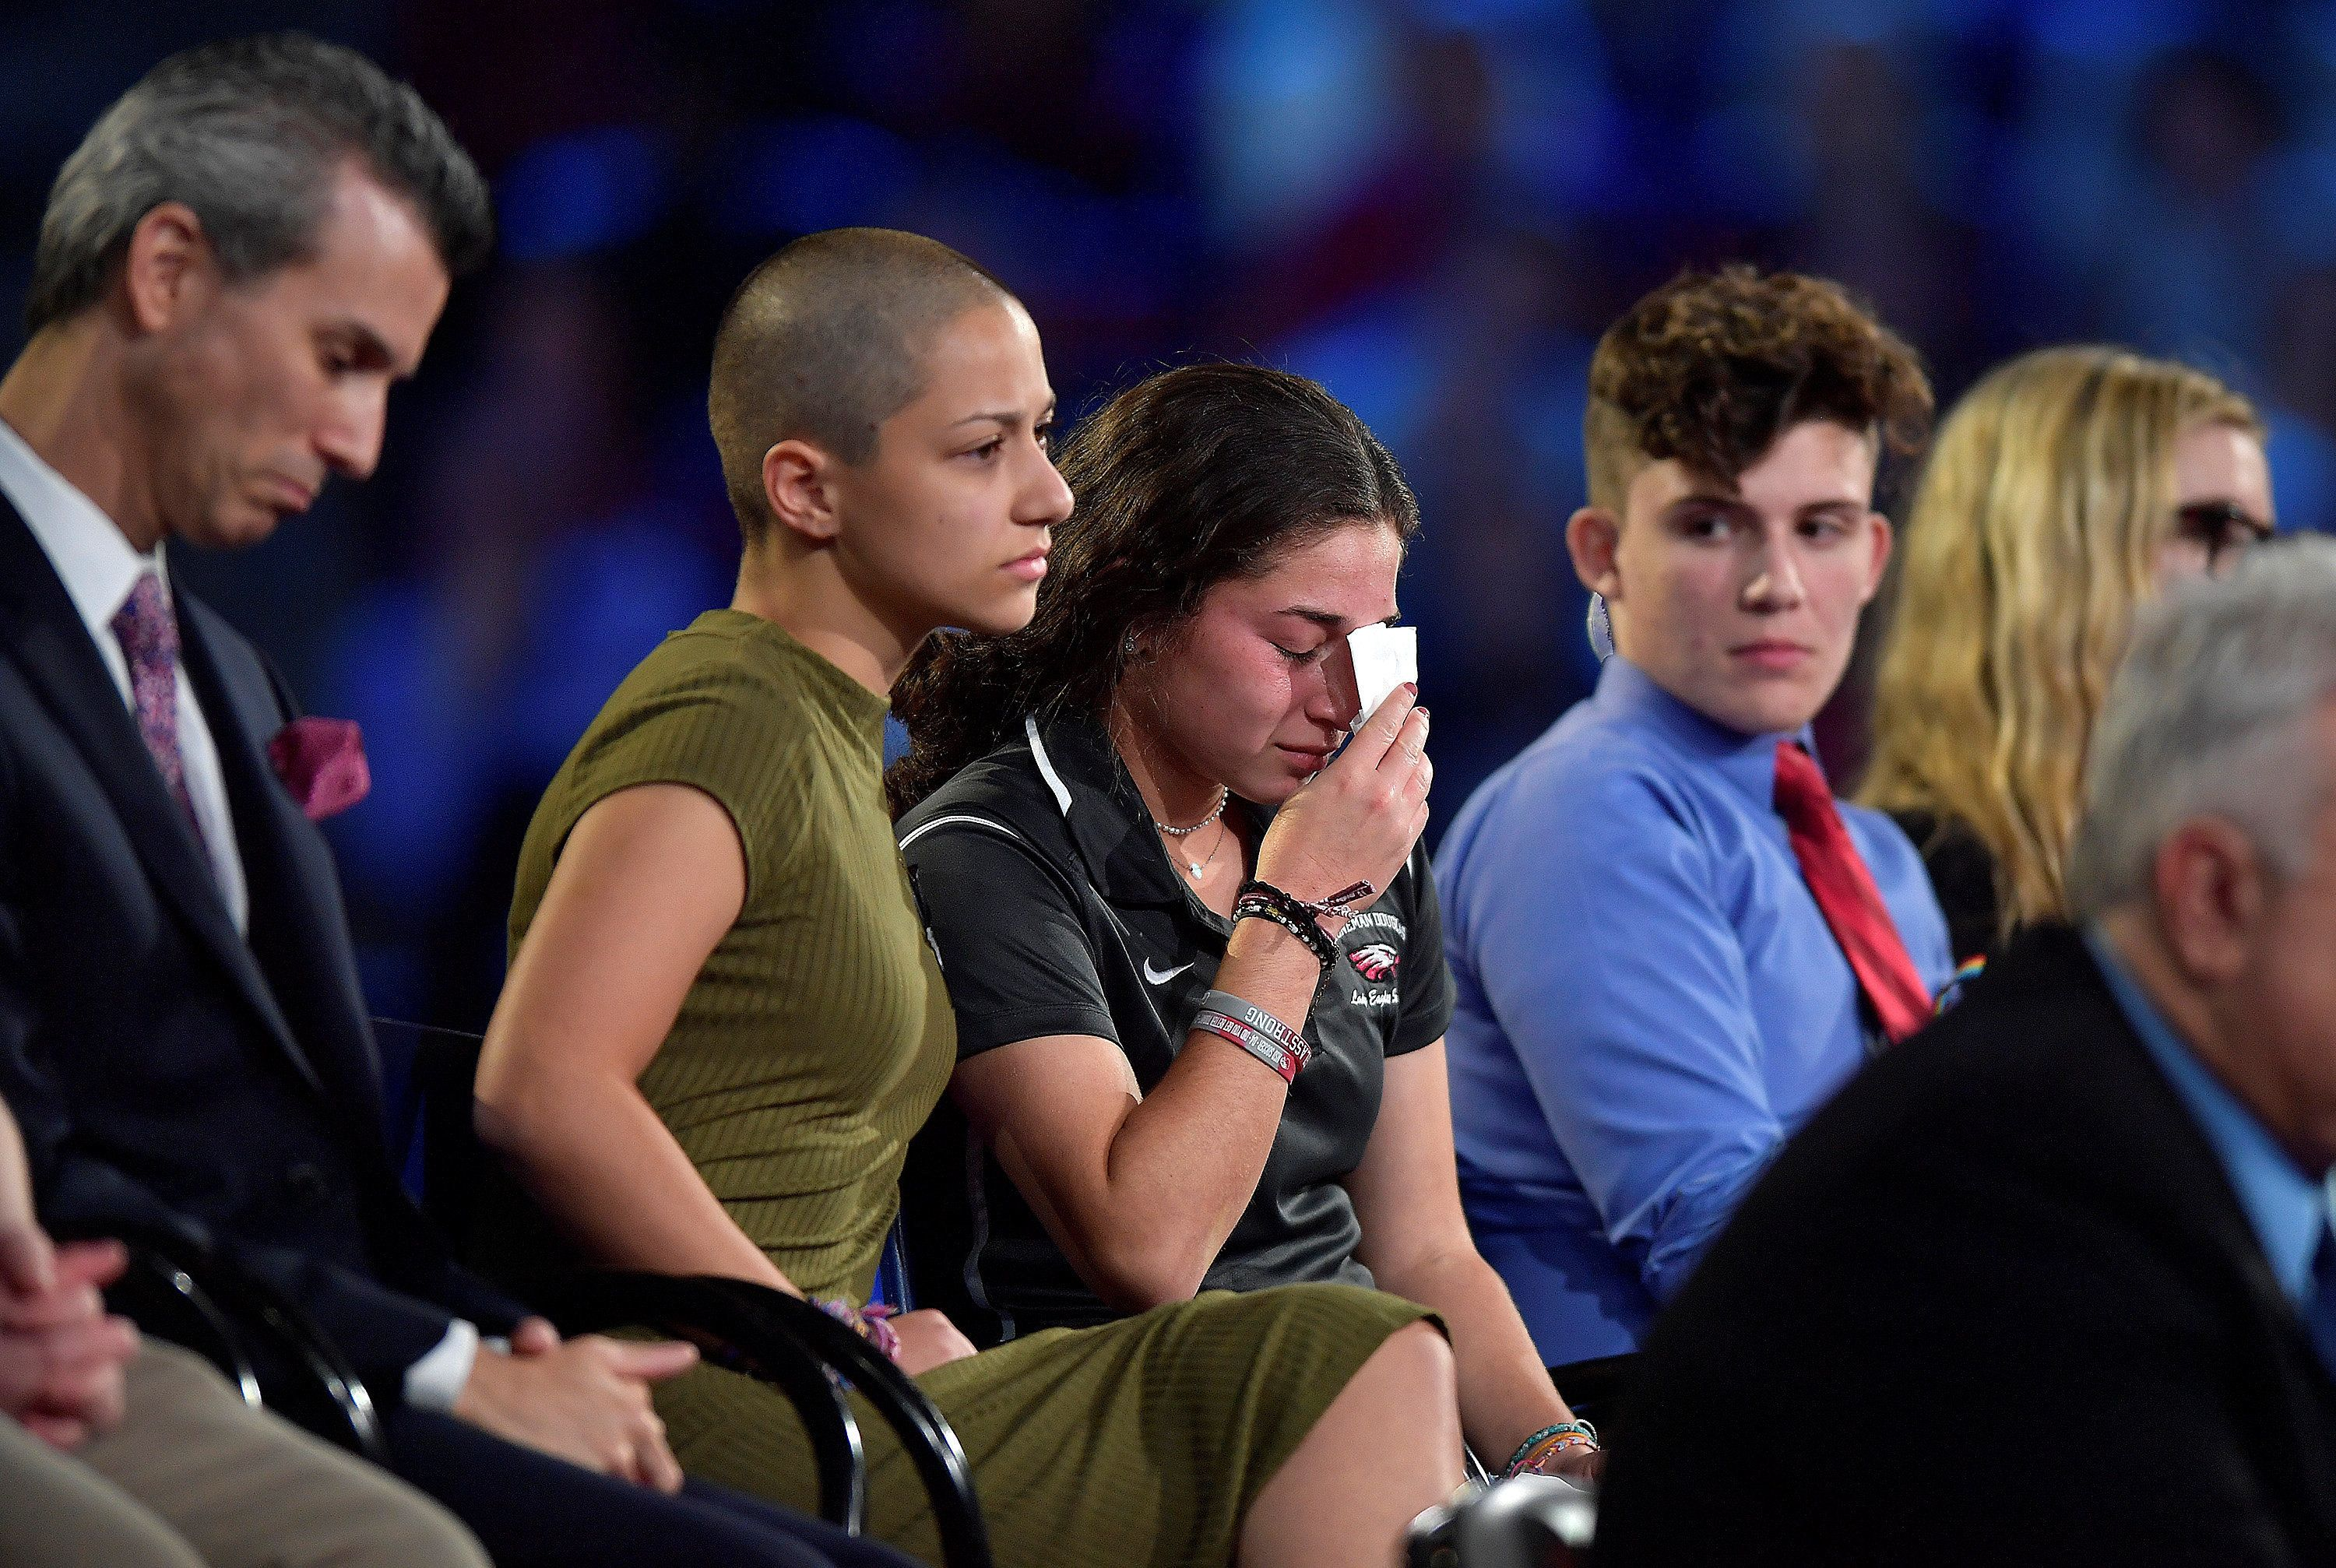 Marjory Stoneman Douglas High School student Emma Gonzalez comforts a classmate during a CNN town hall meeting, at the BB&T Center, in Sunrise, Florida, U.S. February 21, 2018.  REUTERS/Michael Laughlin/Pool